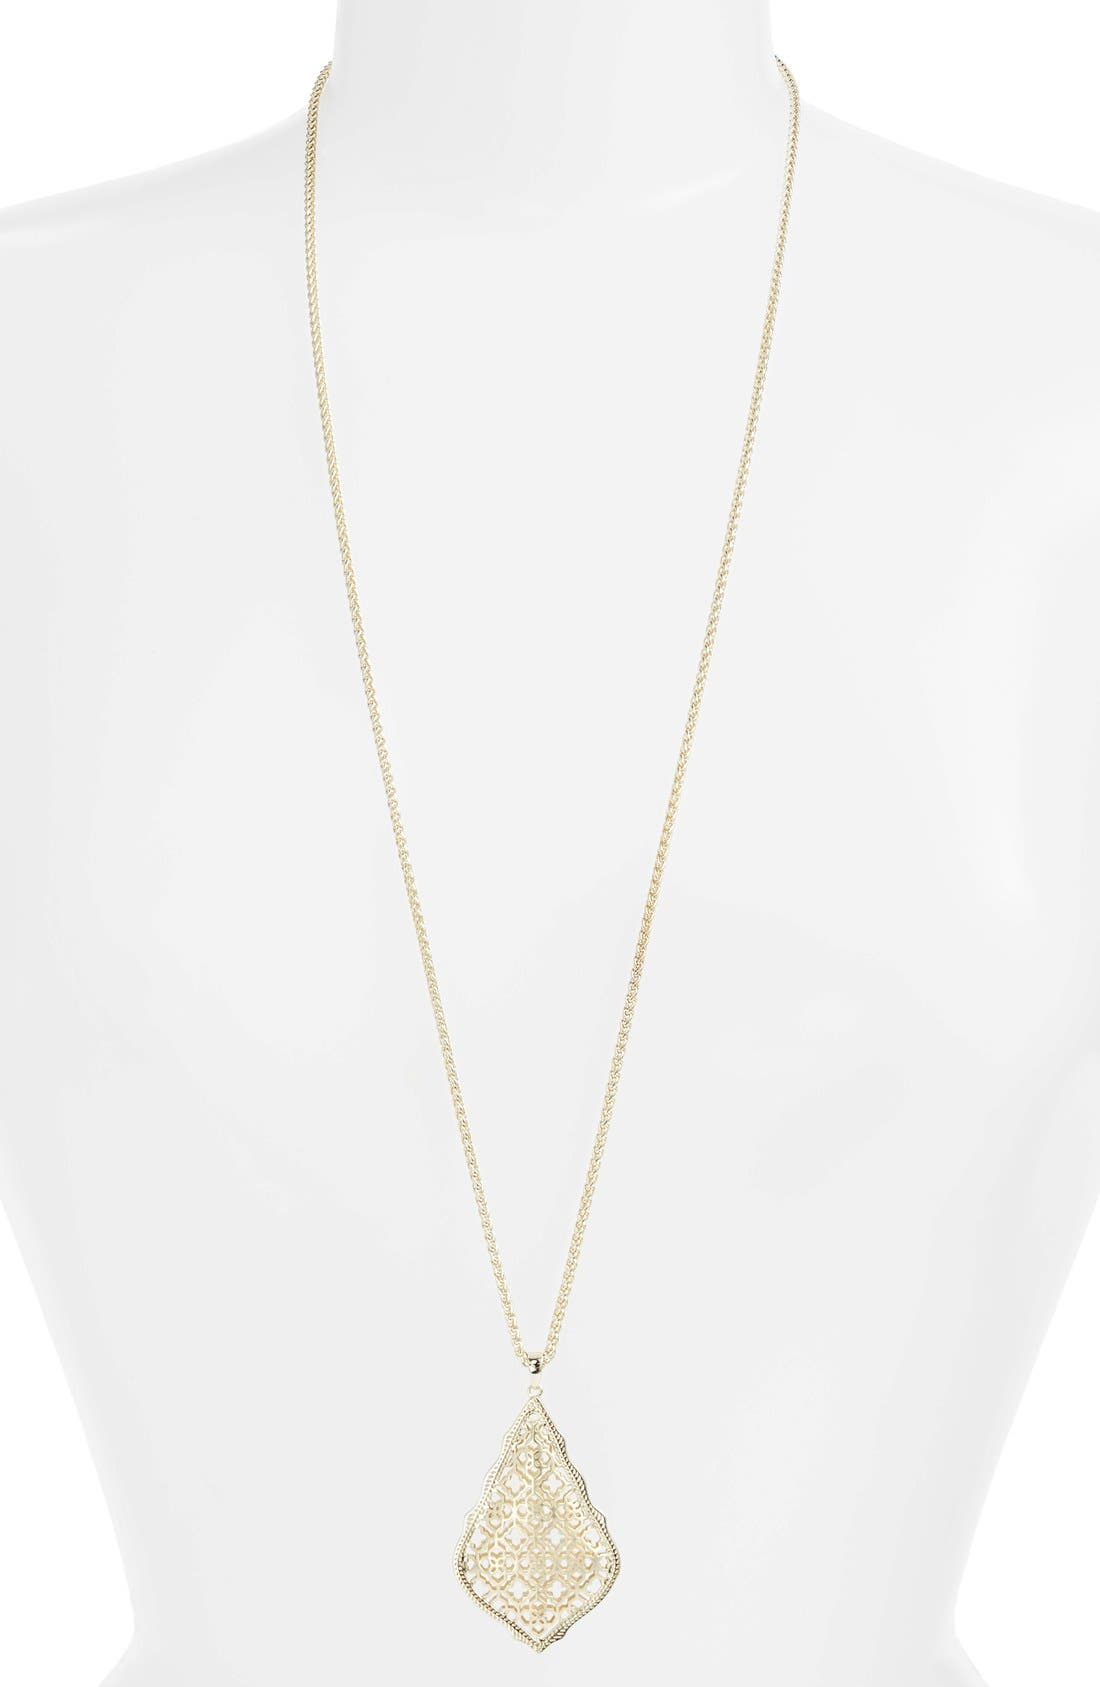 KENDRA SCOTT 'Aiden' Pendant Necklace